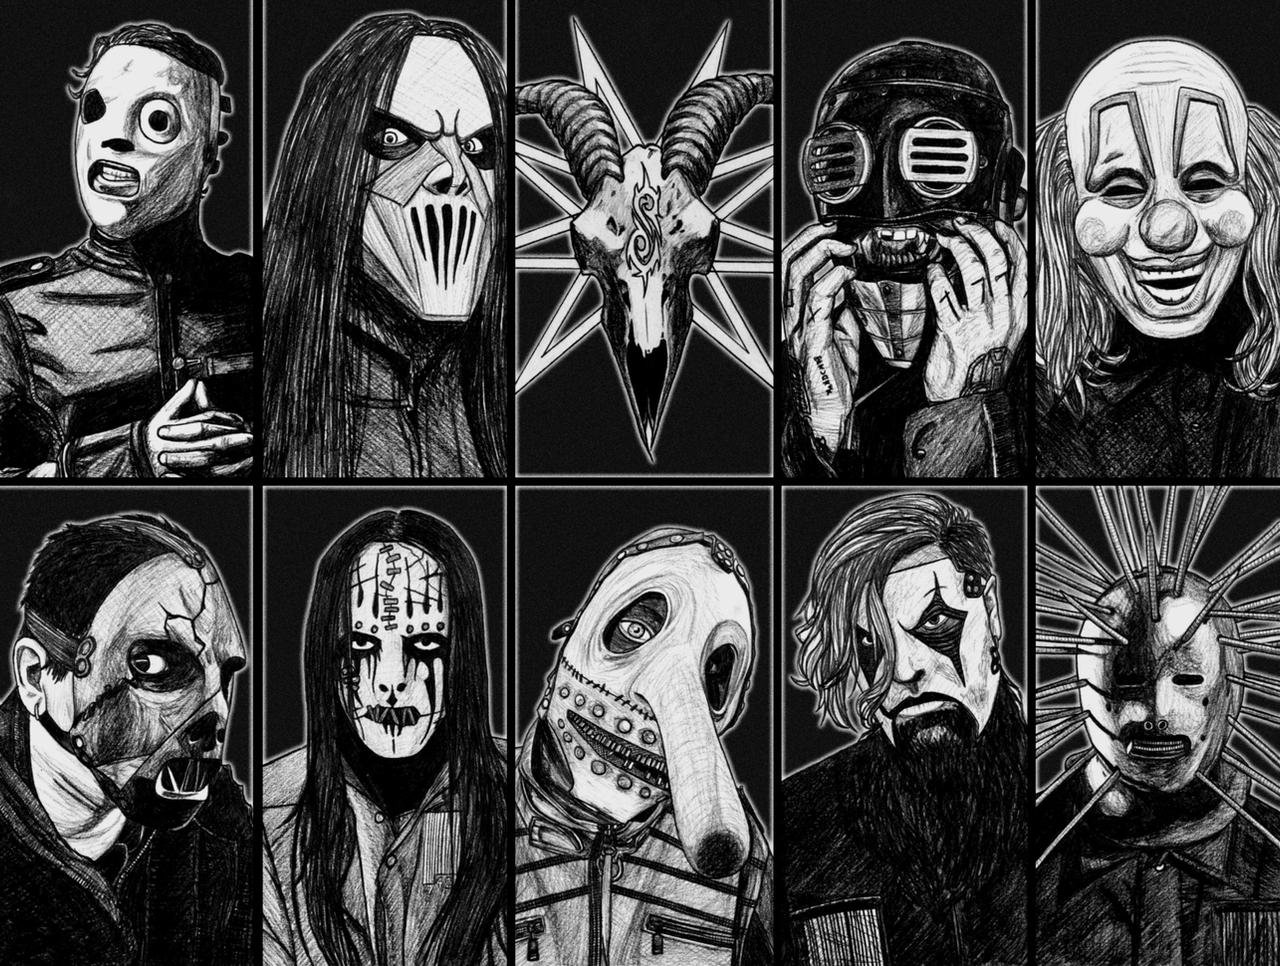 Slipknot Wallpaper by Anghellic67 on DeviantArt